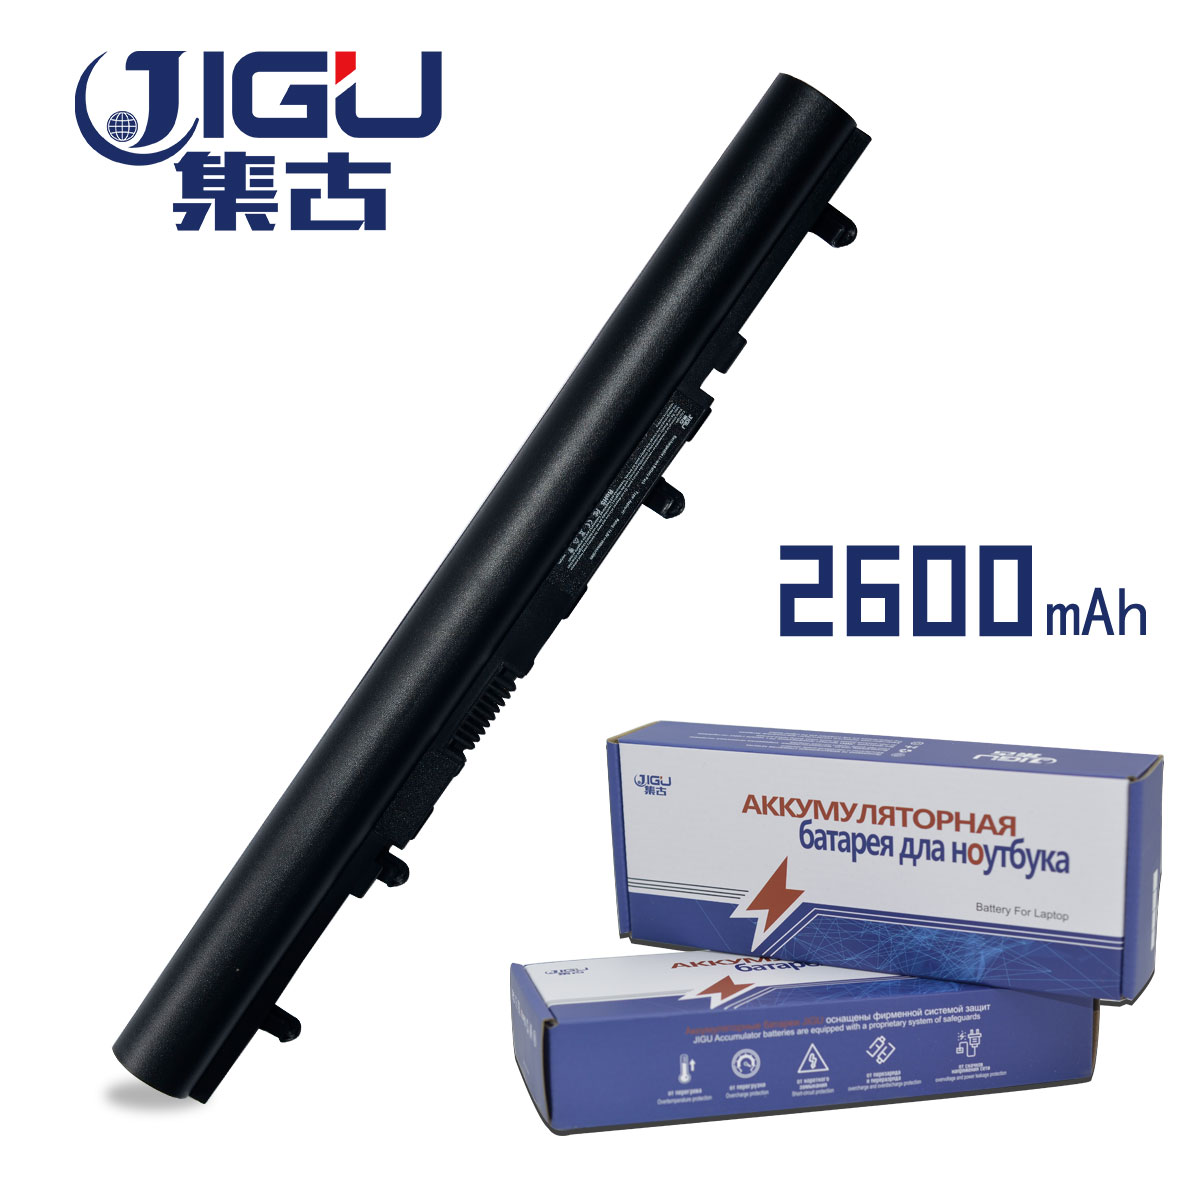 JIGU New Laptop Battery For Acer Aspire V5-100 V5-400 Aspire V5-500 V5 V5-571P AL12A32 V5-571G V5-531 V5-431G V5-471 V5-171 touch screen glass lens digitizer 15 6 for acer aspire v5 531 v5 531g v5 531p v5 531pg v5 571 v5 571g v5 571p series